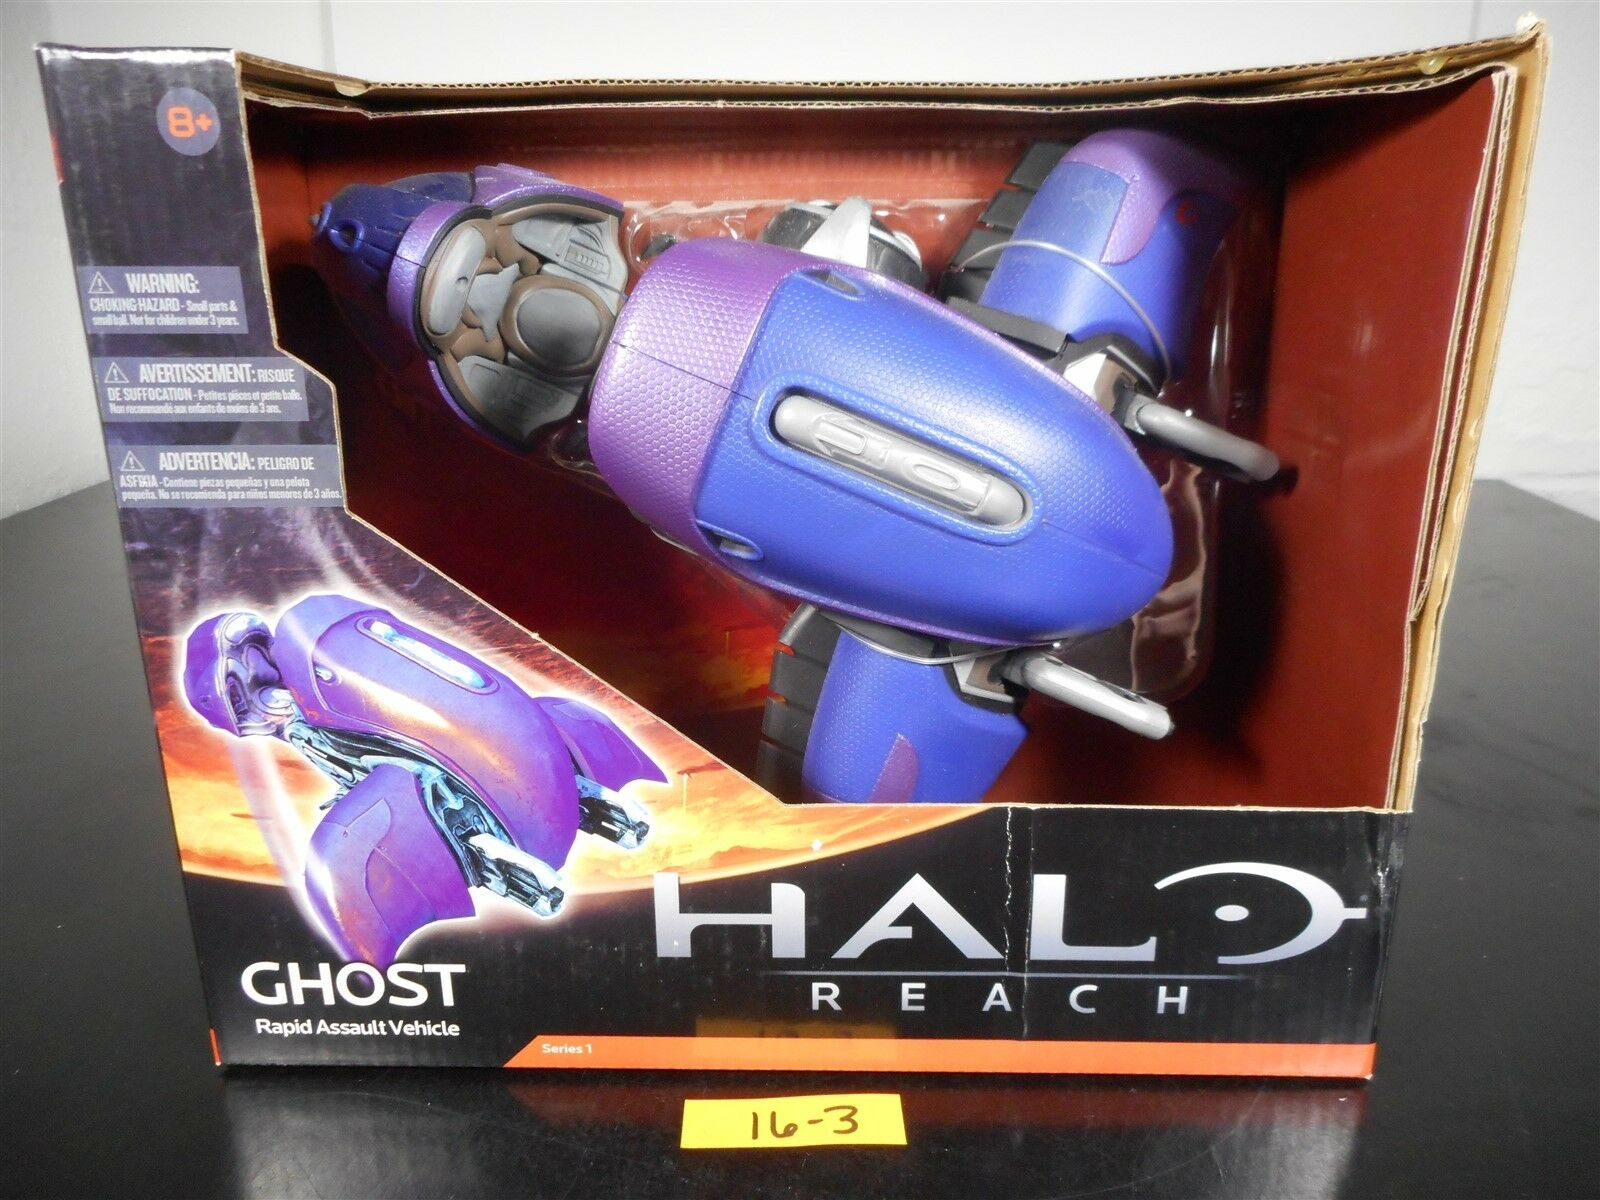 BRAND NEW    HALO REACH GHOST RAPID ASSAULT VEHICLE SERIES 1 XBOX 360 16-3